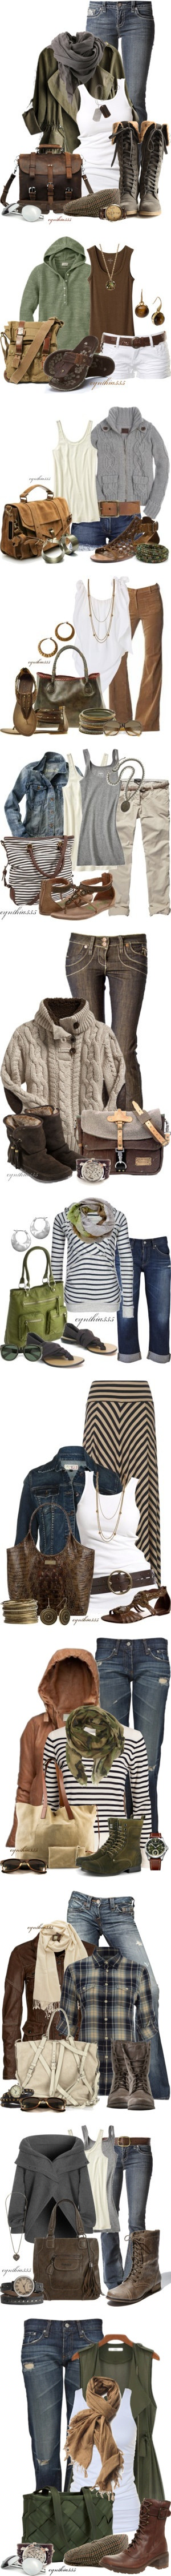 """""""Earthy Comfort"""" by cynthia335 ❤ liked on Polyvore"""